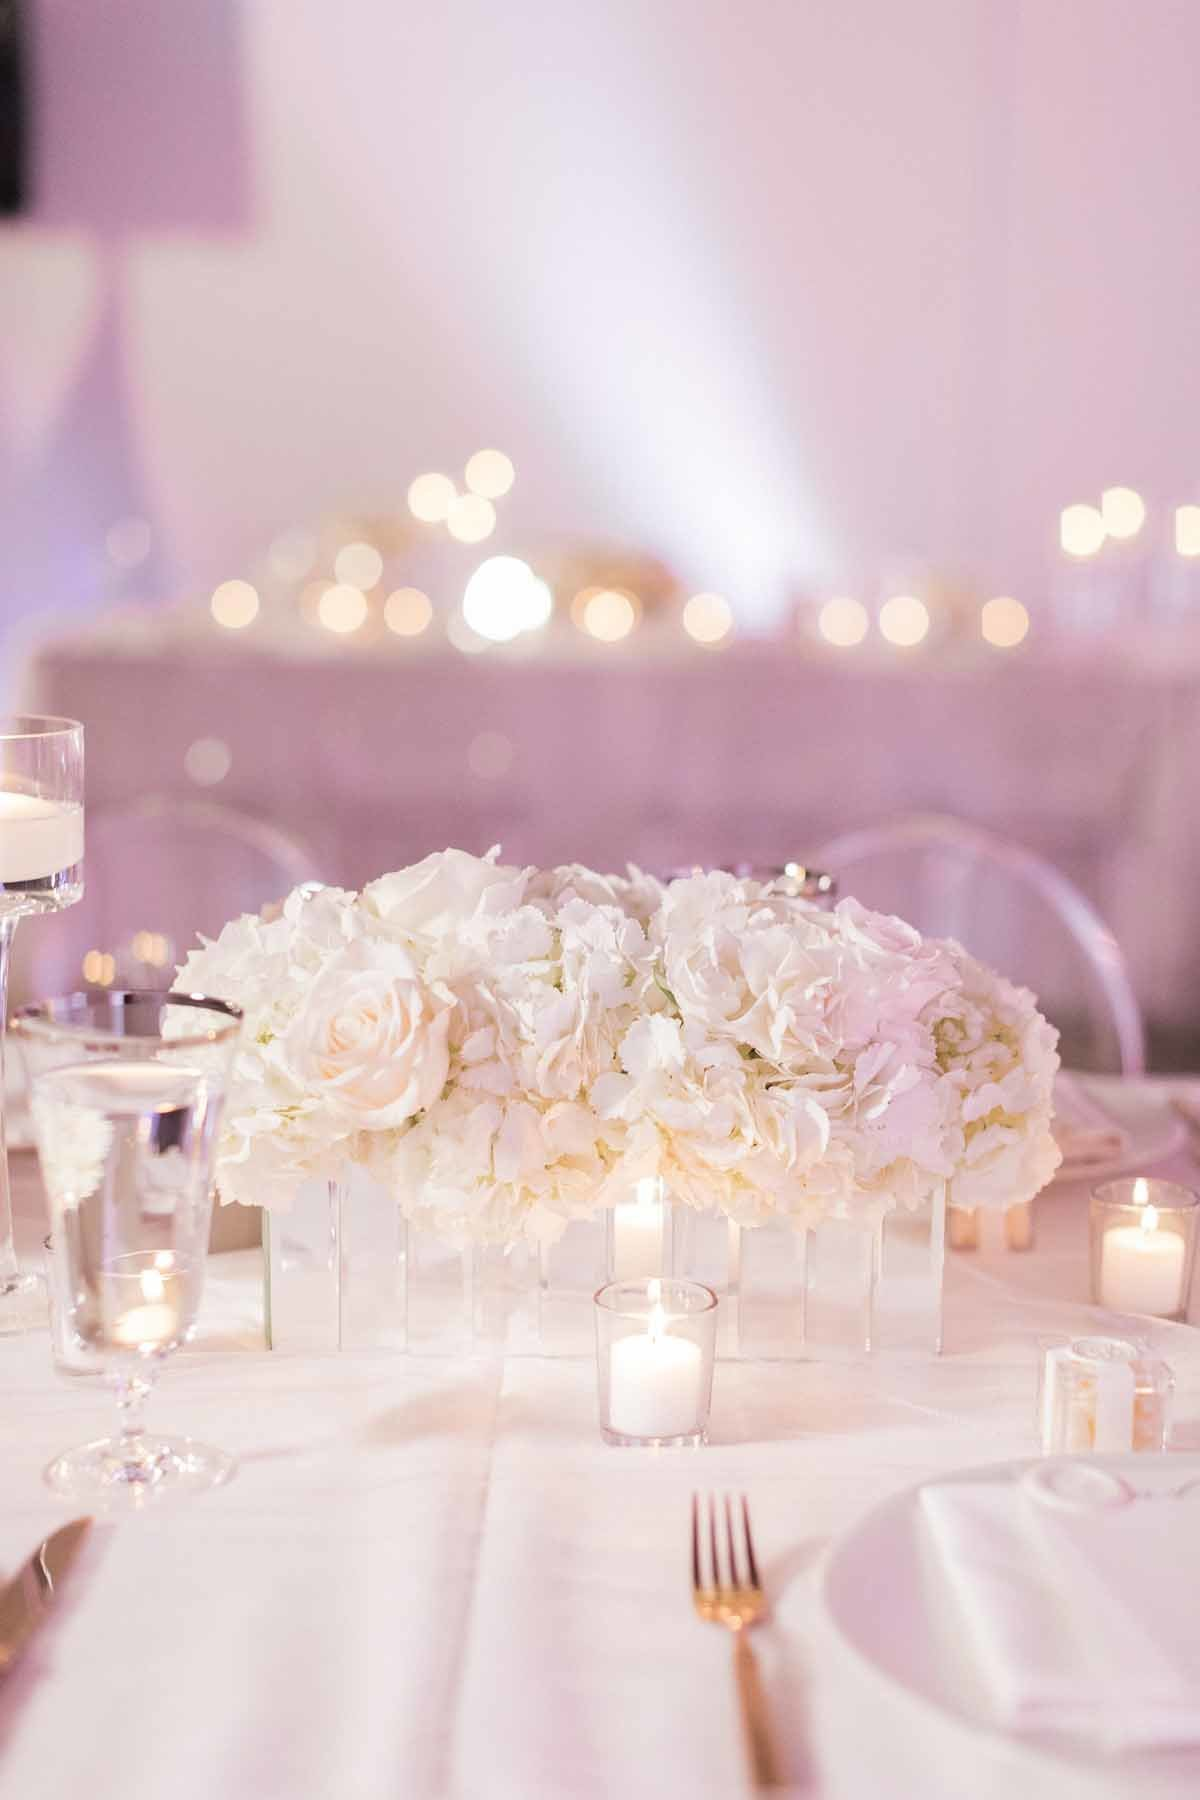 White hydrangea and rose arrangement lit by hundreds of candles is so romantic for a reception look.